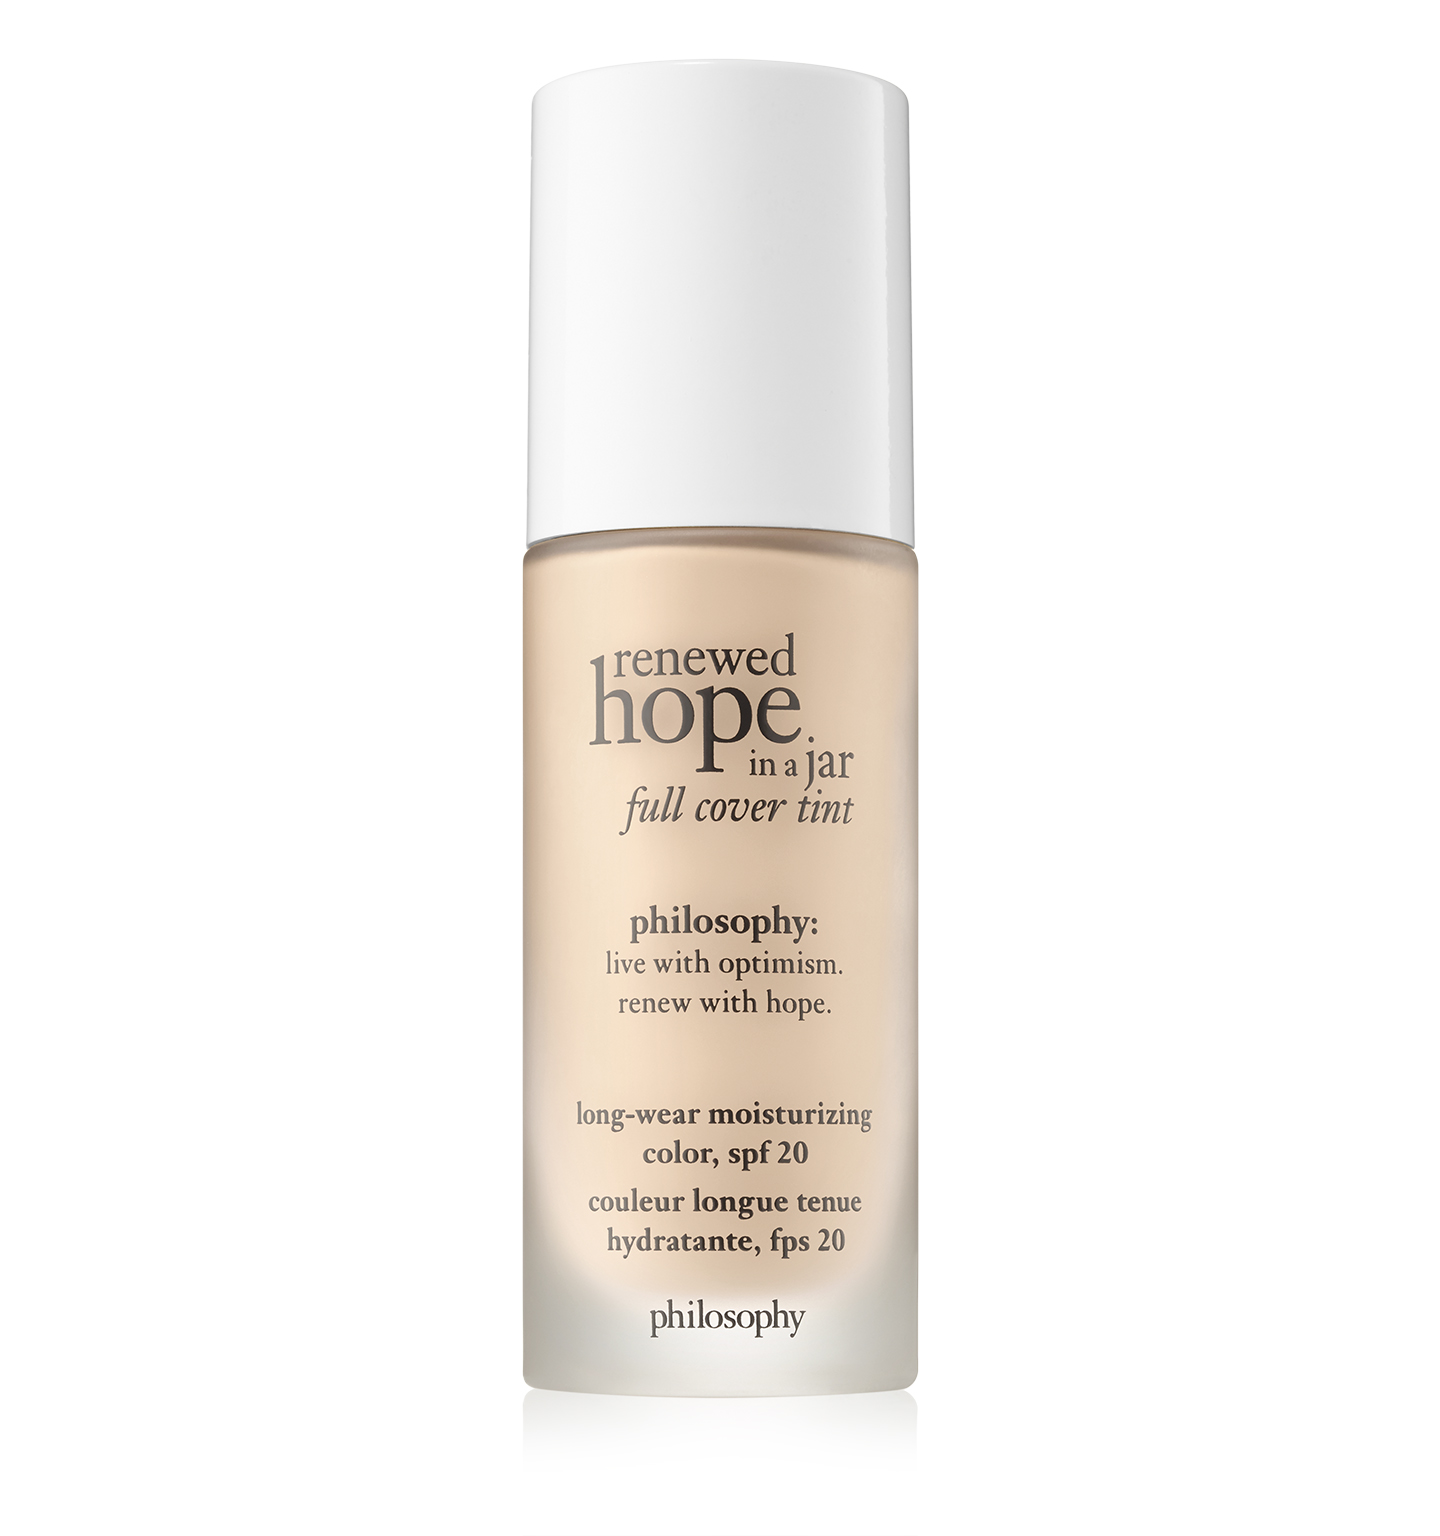 philosophy, renewed hope in a jar full cover tint